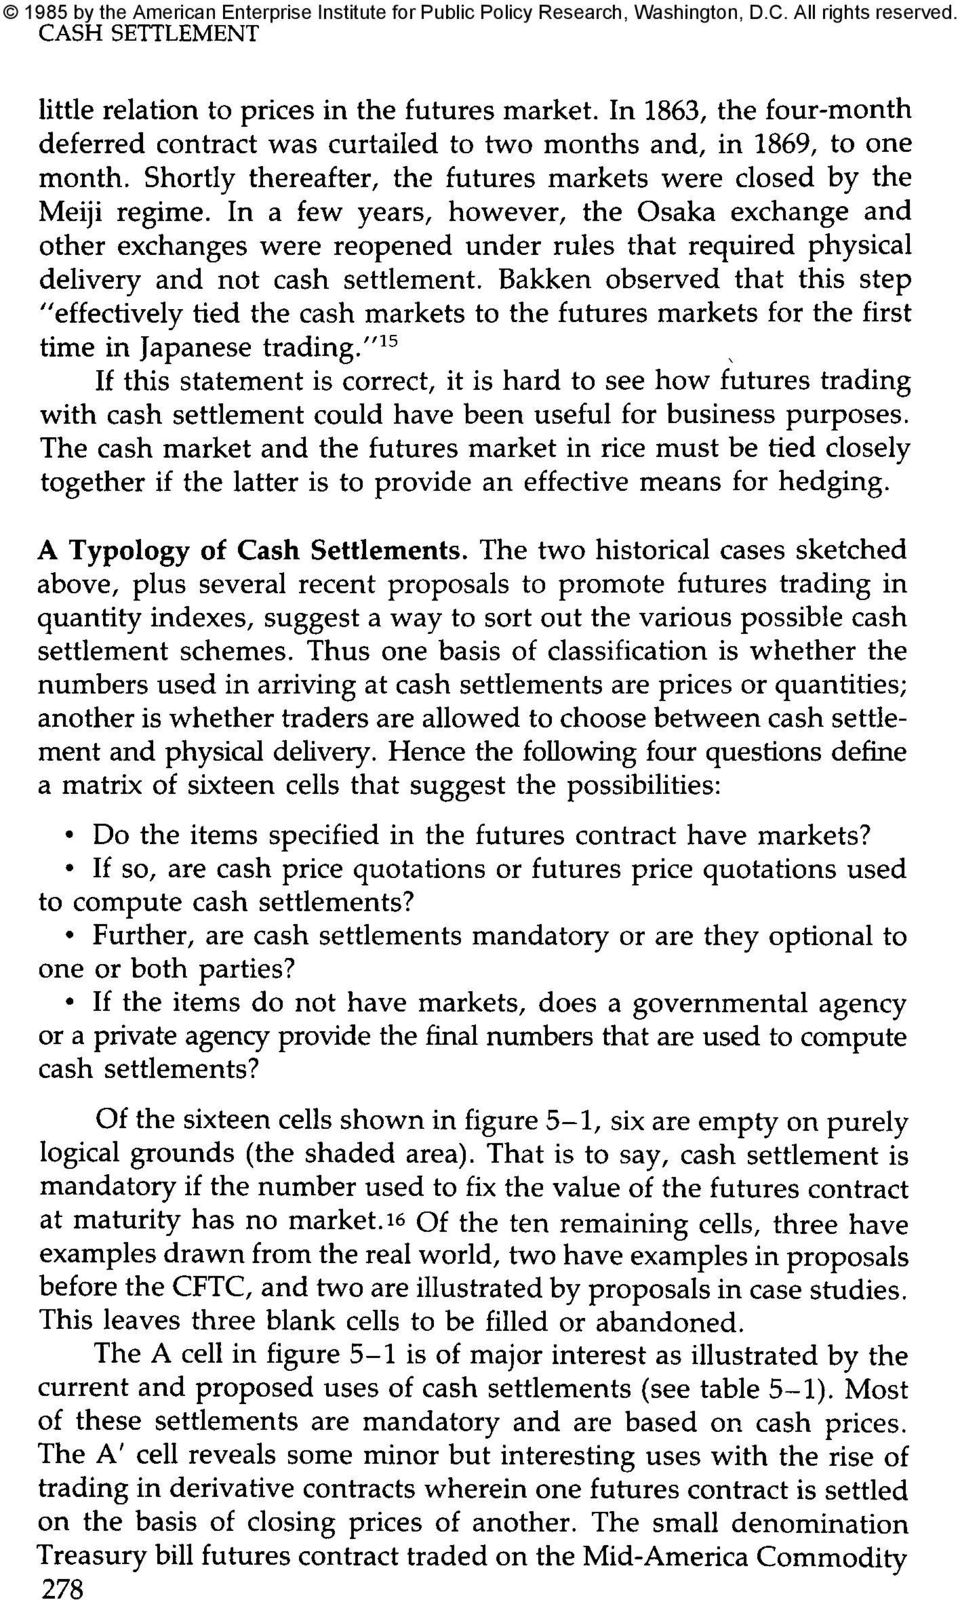 In a few years, however, the Osaka exchange and other exchanges were reopened under rules that required physical delivery and not cash settlement.